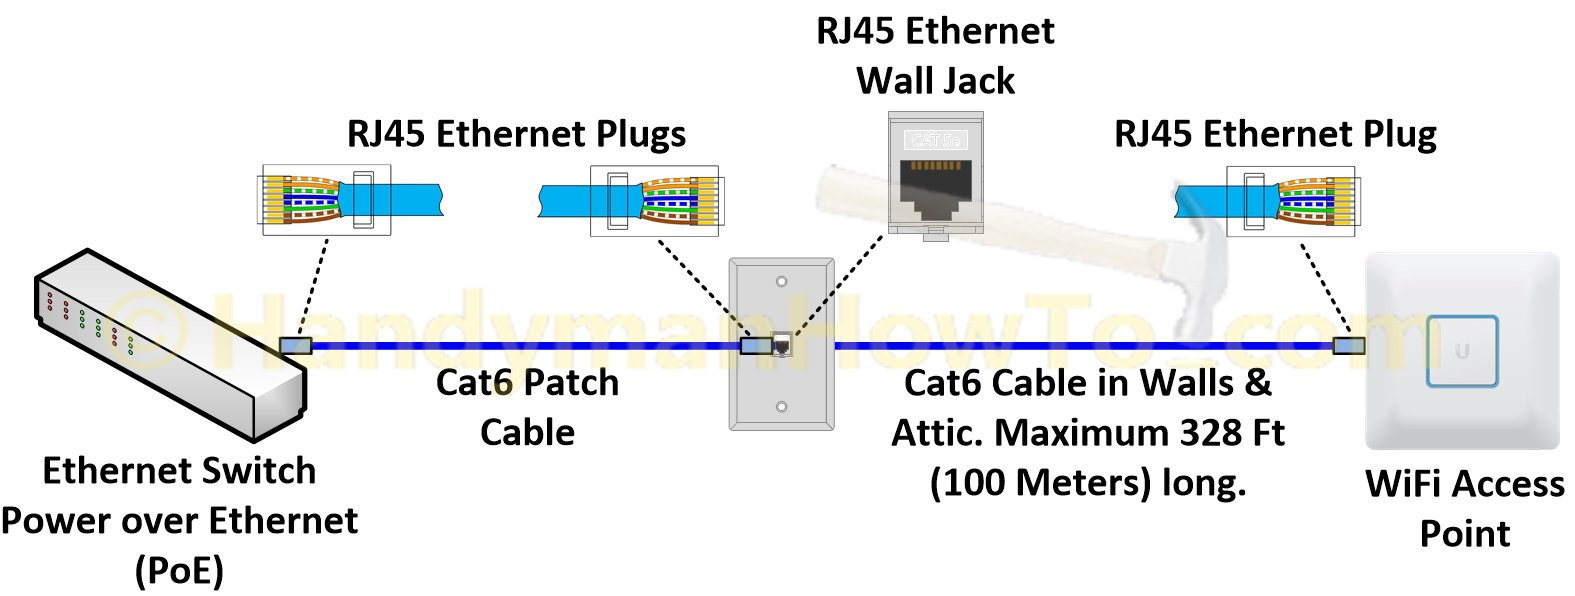 hight resolution of poe cable wiring diagram wiring diagramrj45 moreover poe ether cable wiring further rj11 wiring diagramrj45 wiring